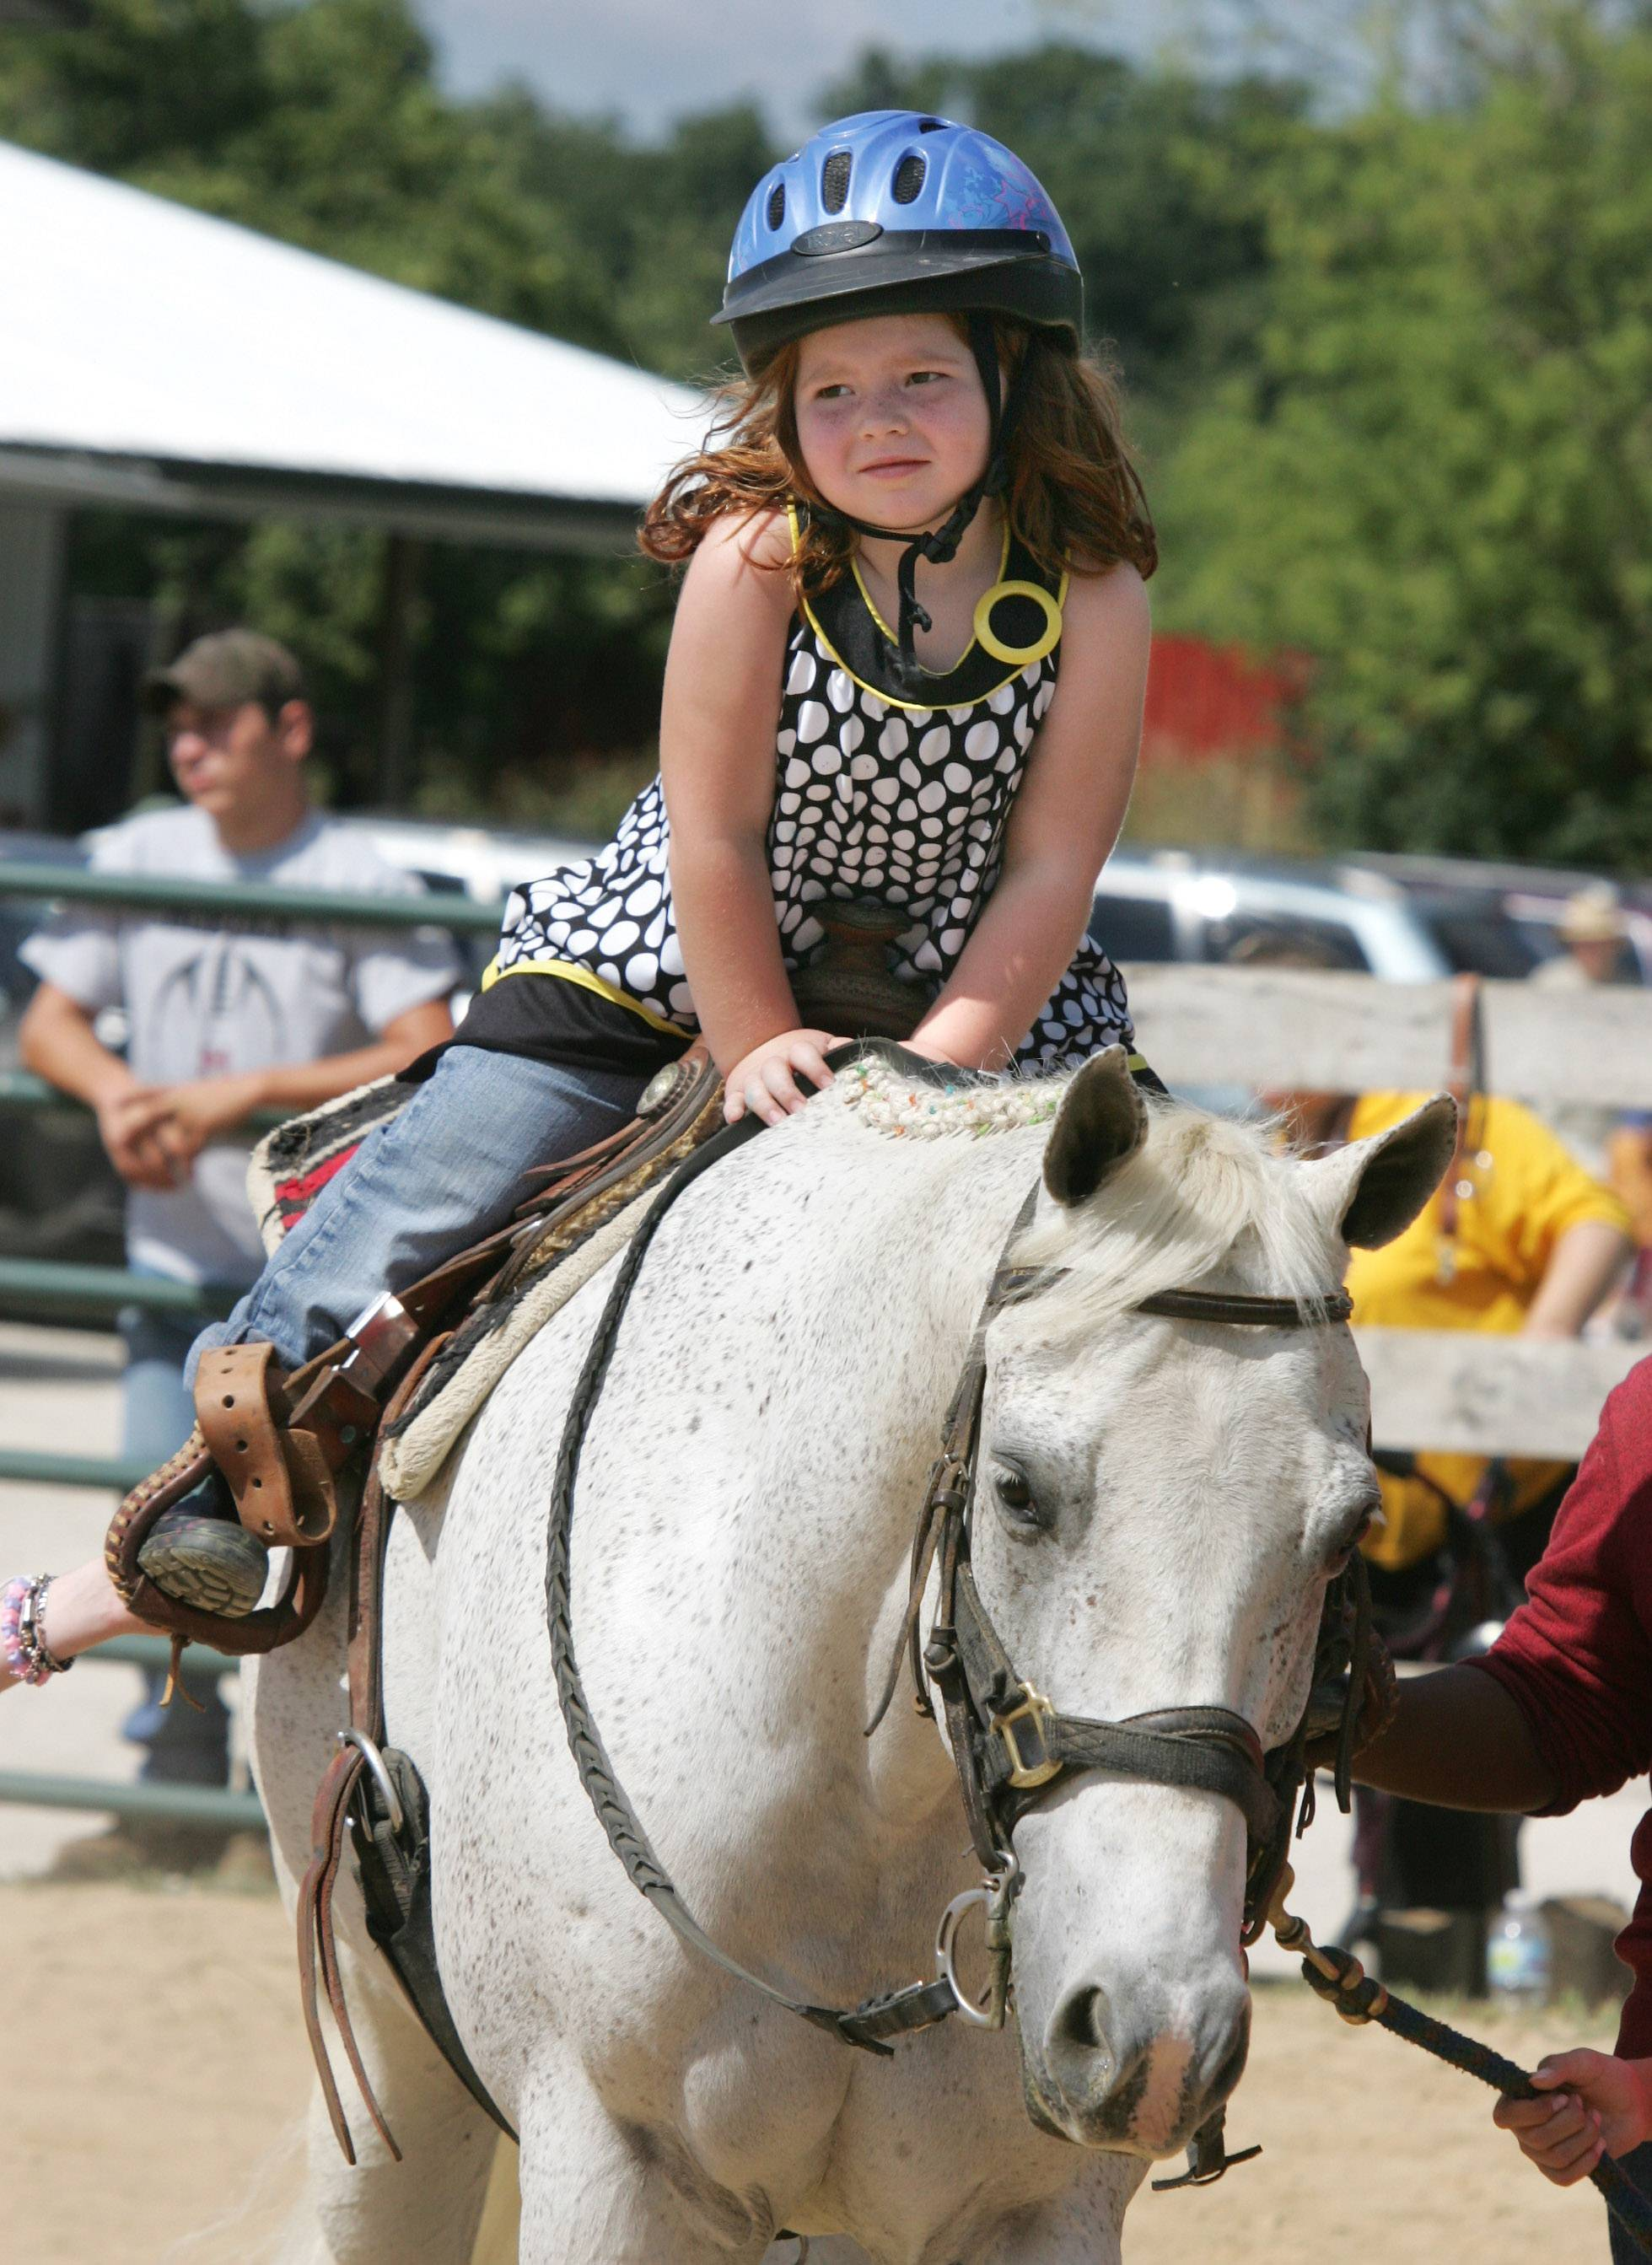 Four-year-old Emma Murray of Arlington Heights rides Cloud during the Family Summerfest and Participant Horse Show event hosted by Partners for Progress.